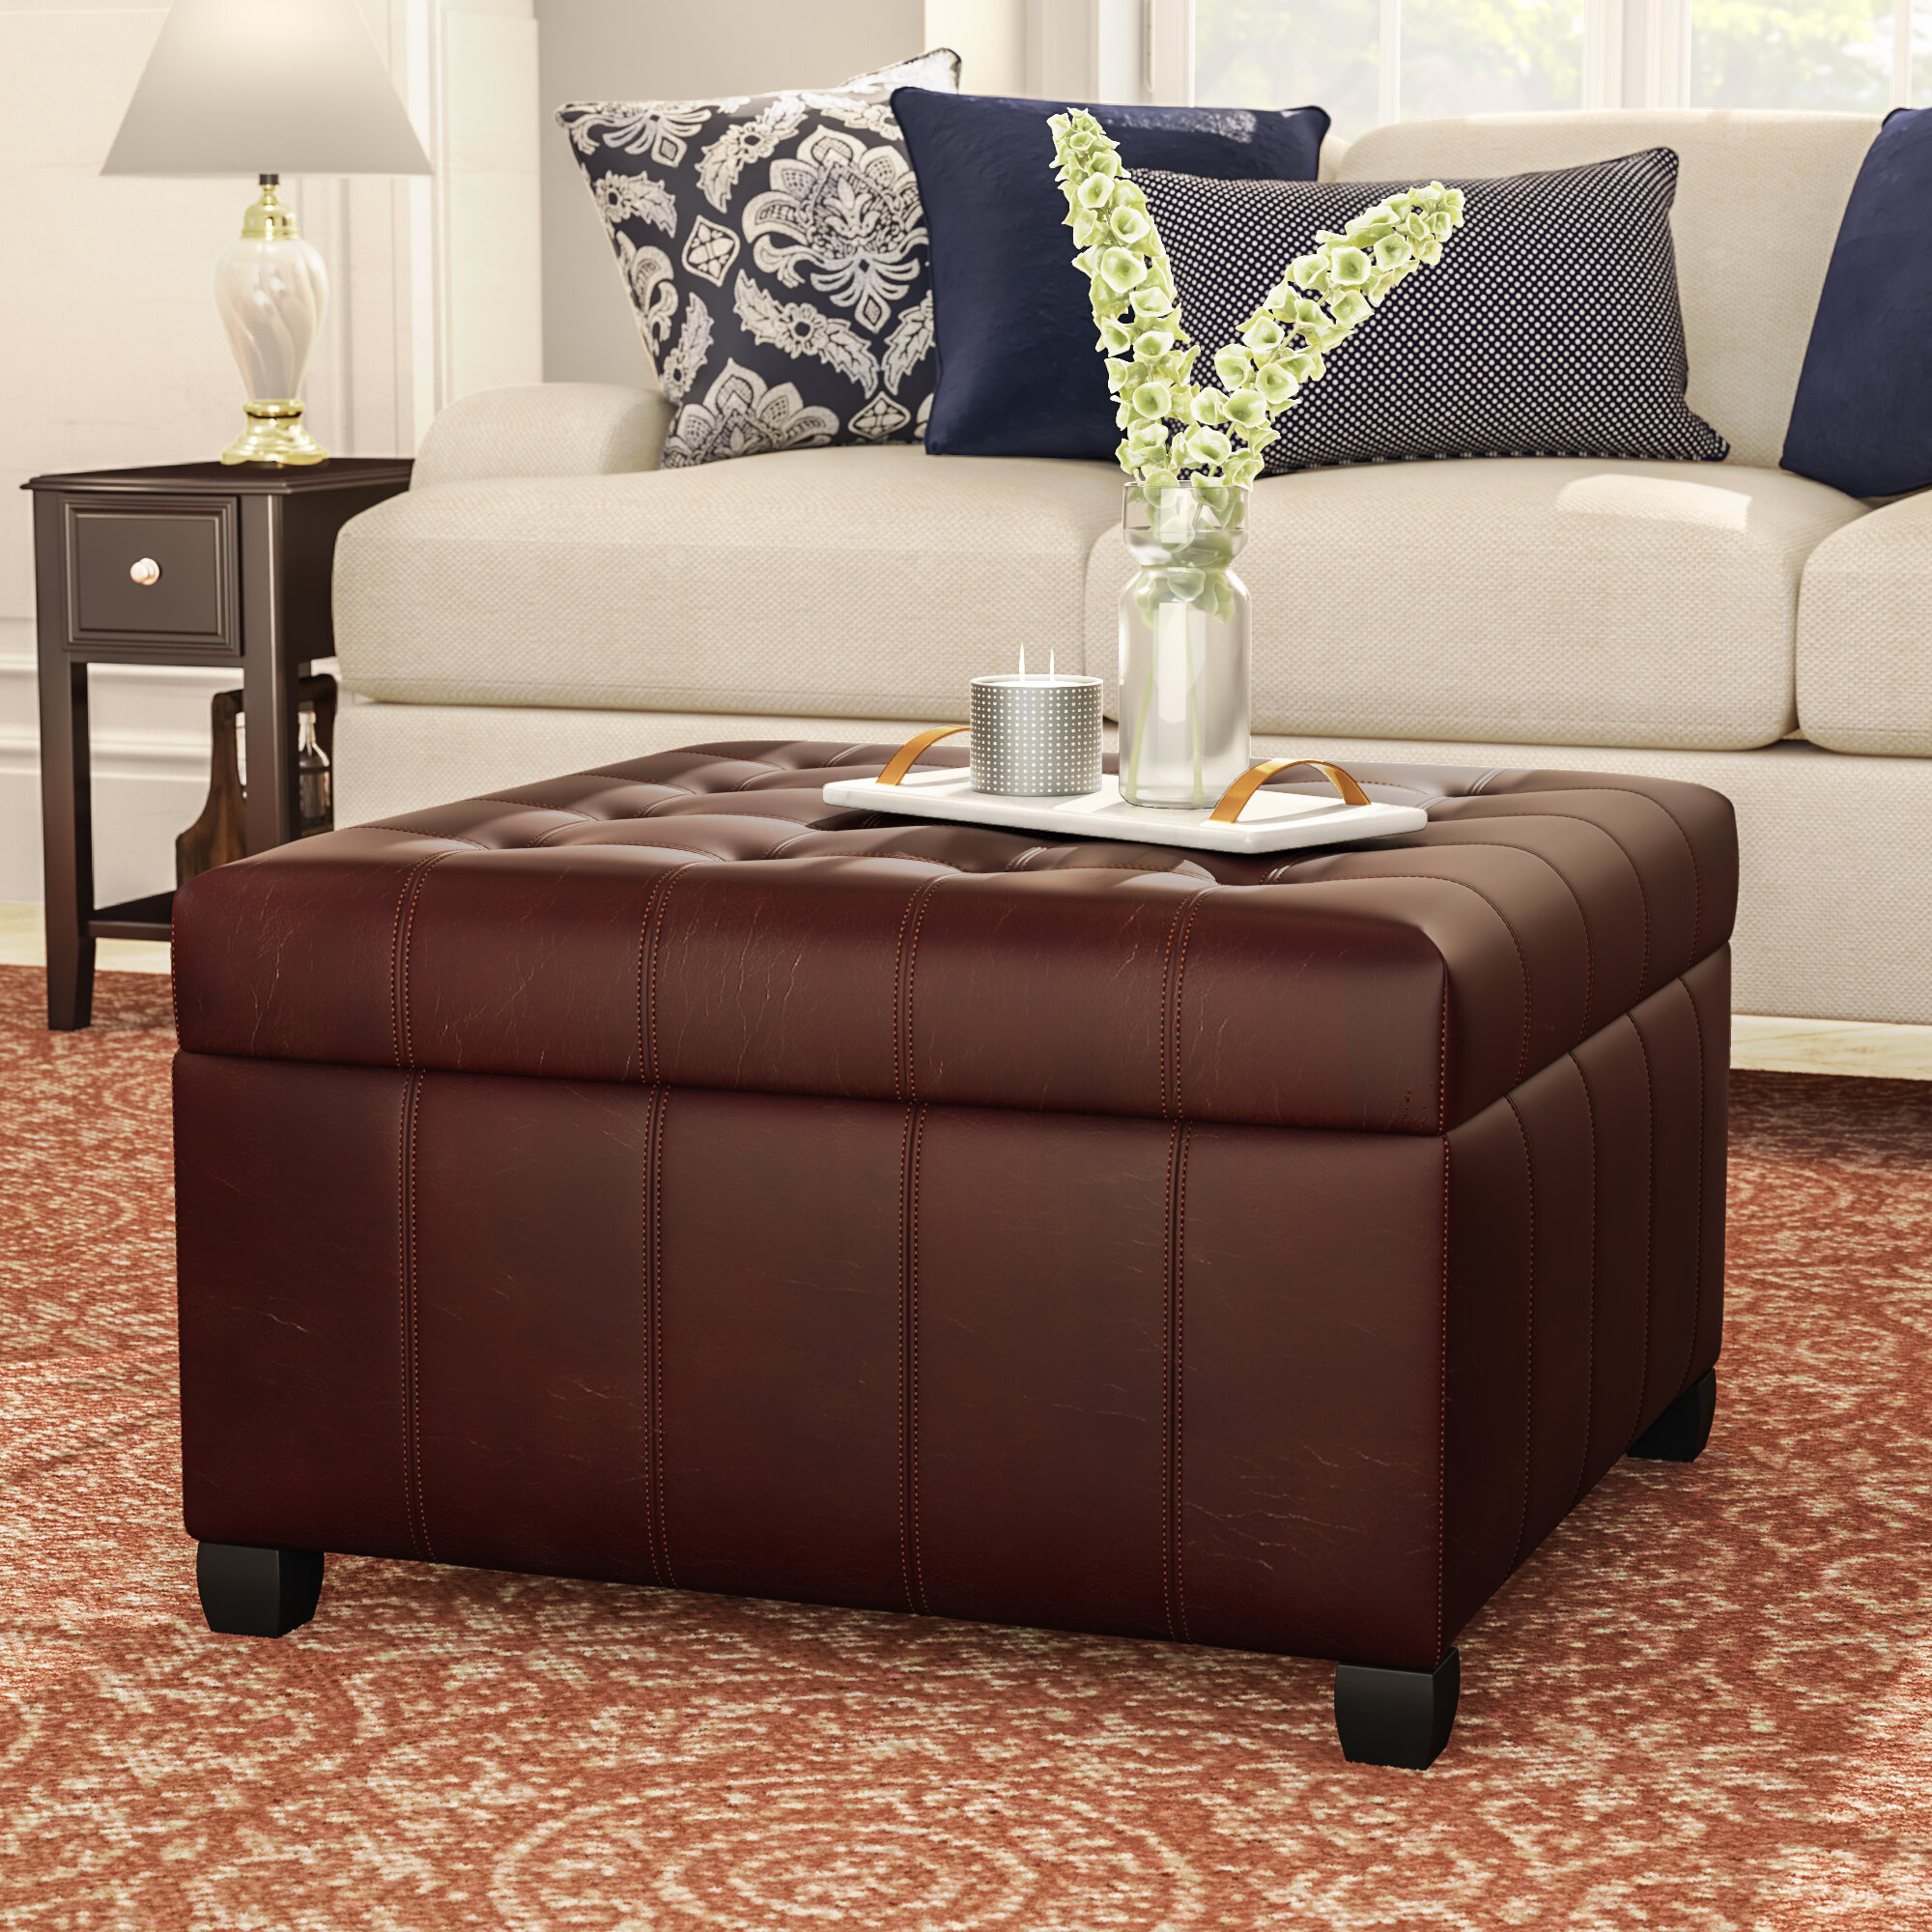 Surprising Darby Home Co Francisville Tufted Storage Ottoman Reviews Short Links Chair Design For Home Short Linksinfo